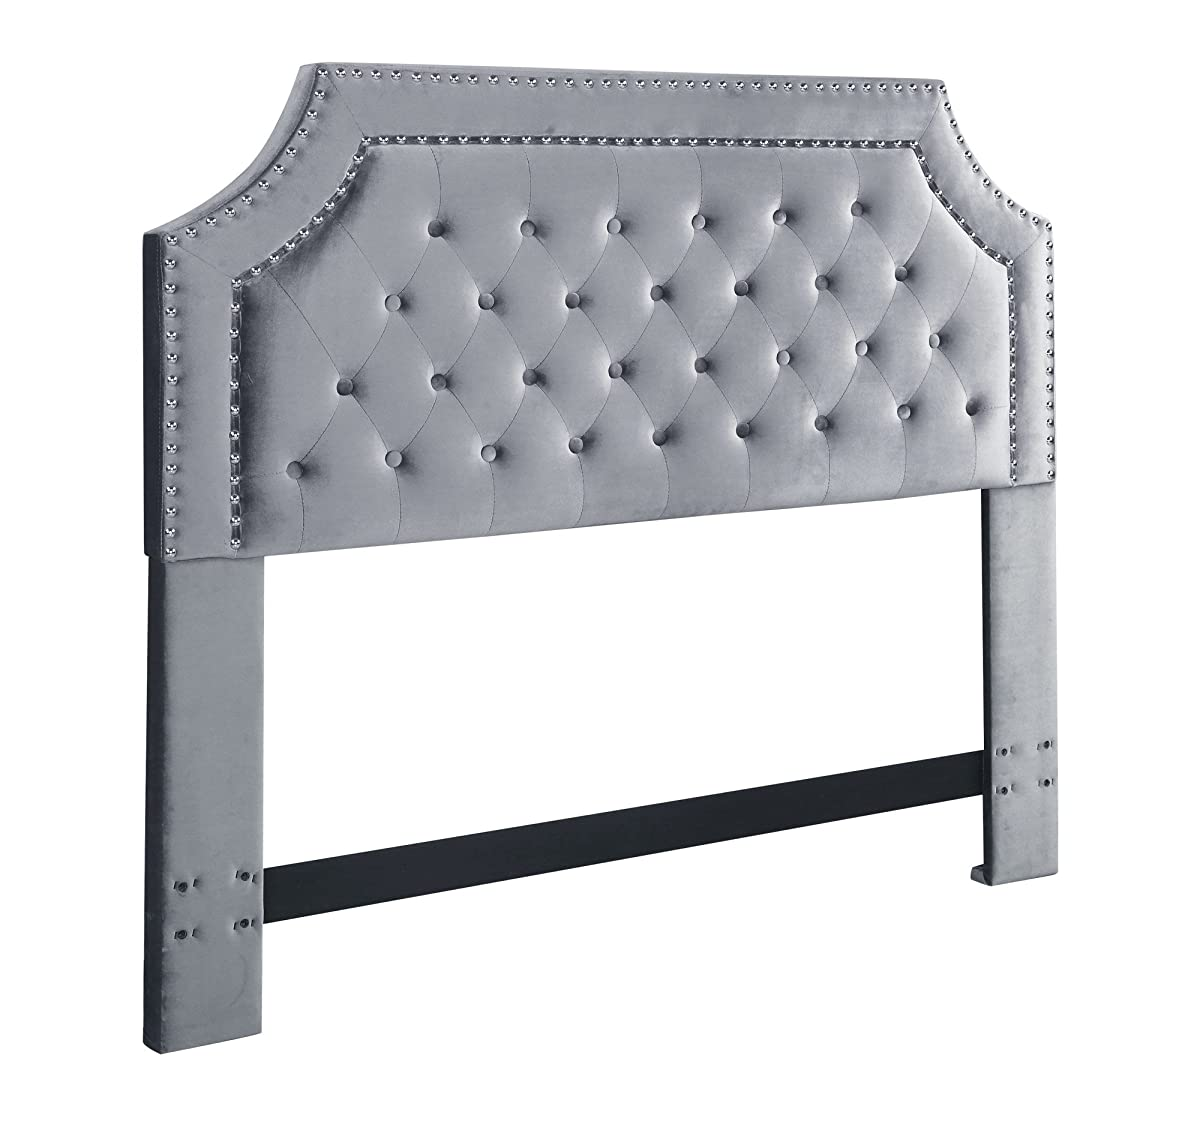 Iconic Home FHB9021-AN Chava Headboard Velvet Upholstered Button Tufted Double Row Silver Nailhead Trim Modern Transitional Full Queen, Grey